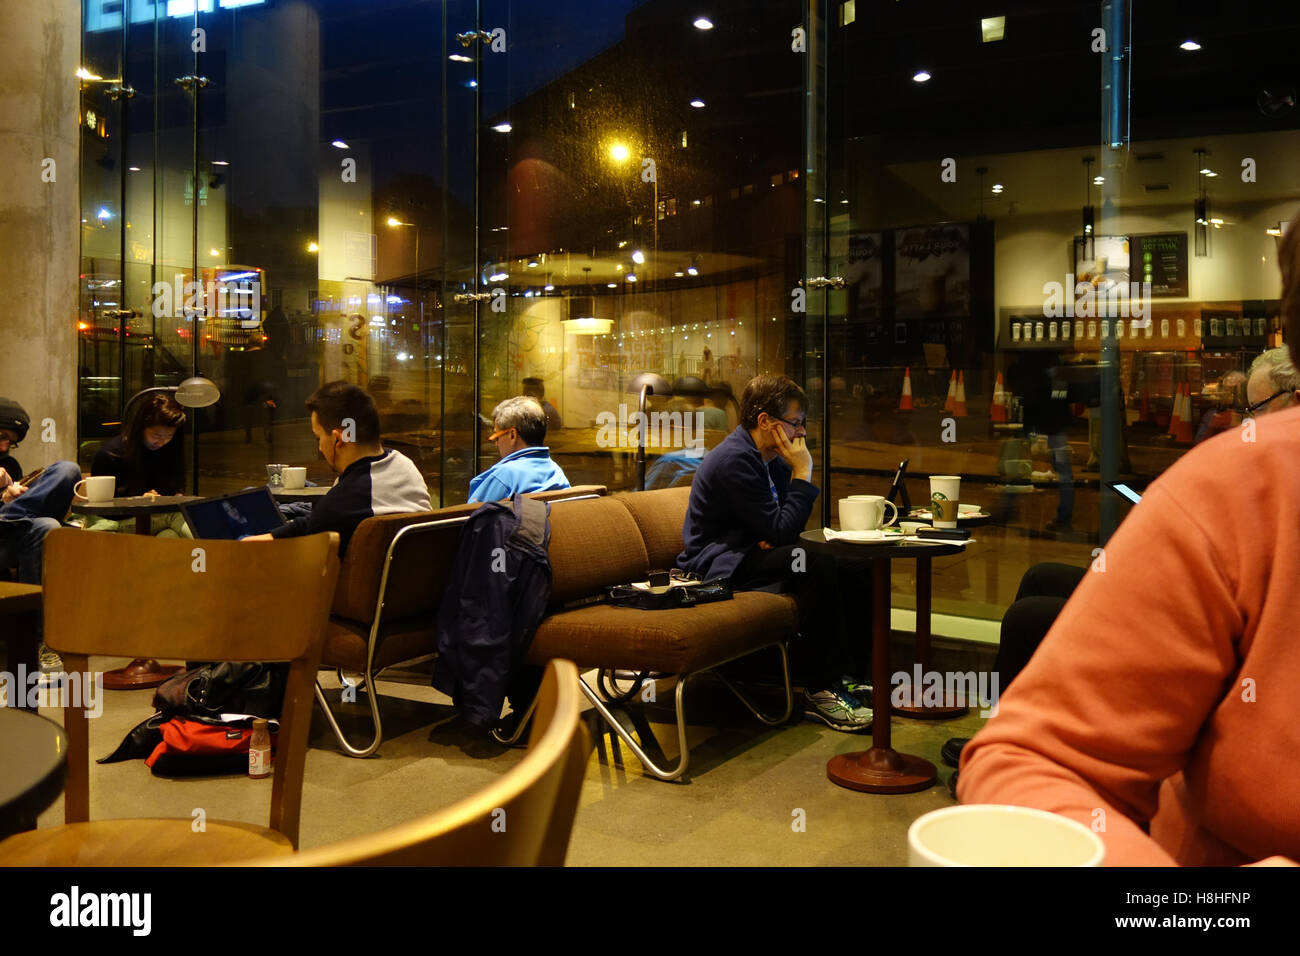 Customers in cafe - Stock Image